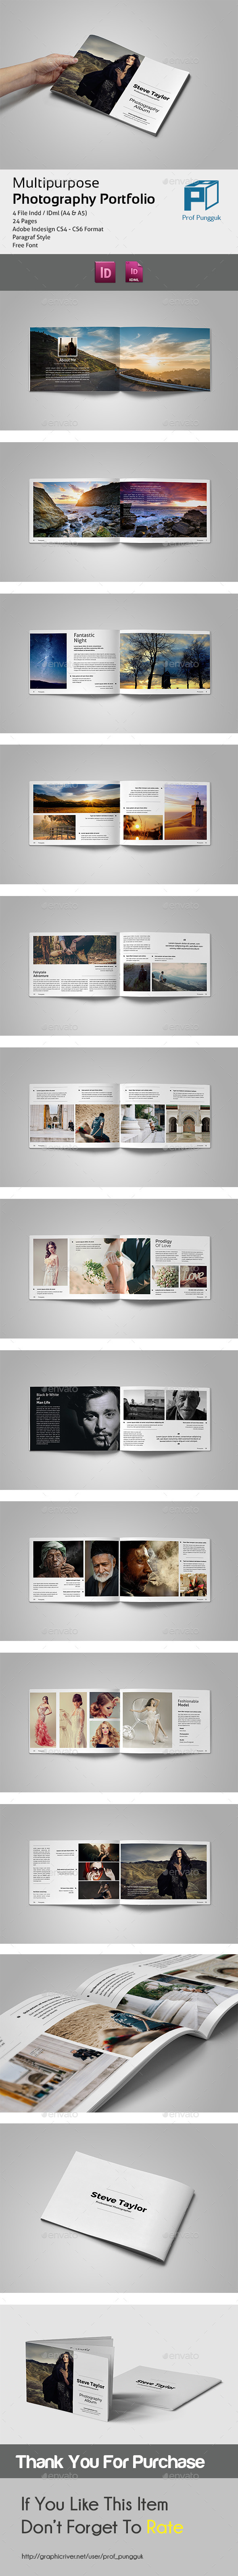 GraphicRiver Photography Portfolio A4 & A5 11104112